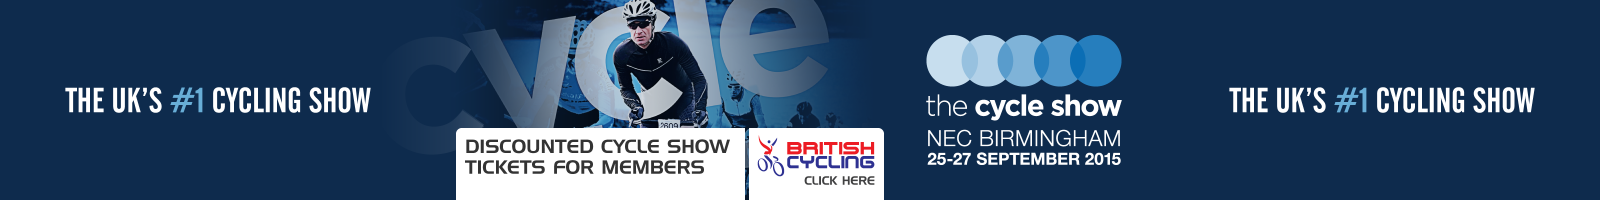 Cycle Show offer for British Cycling members